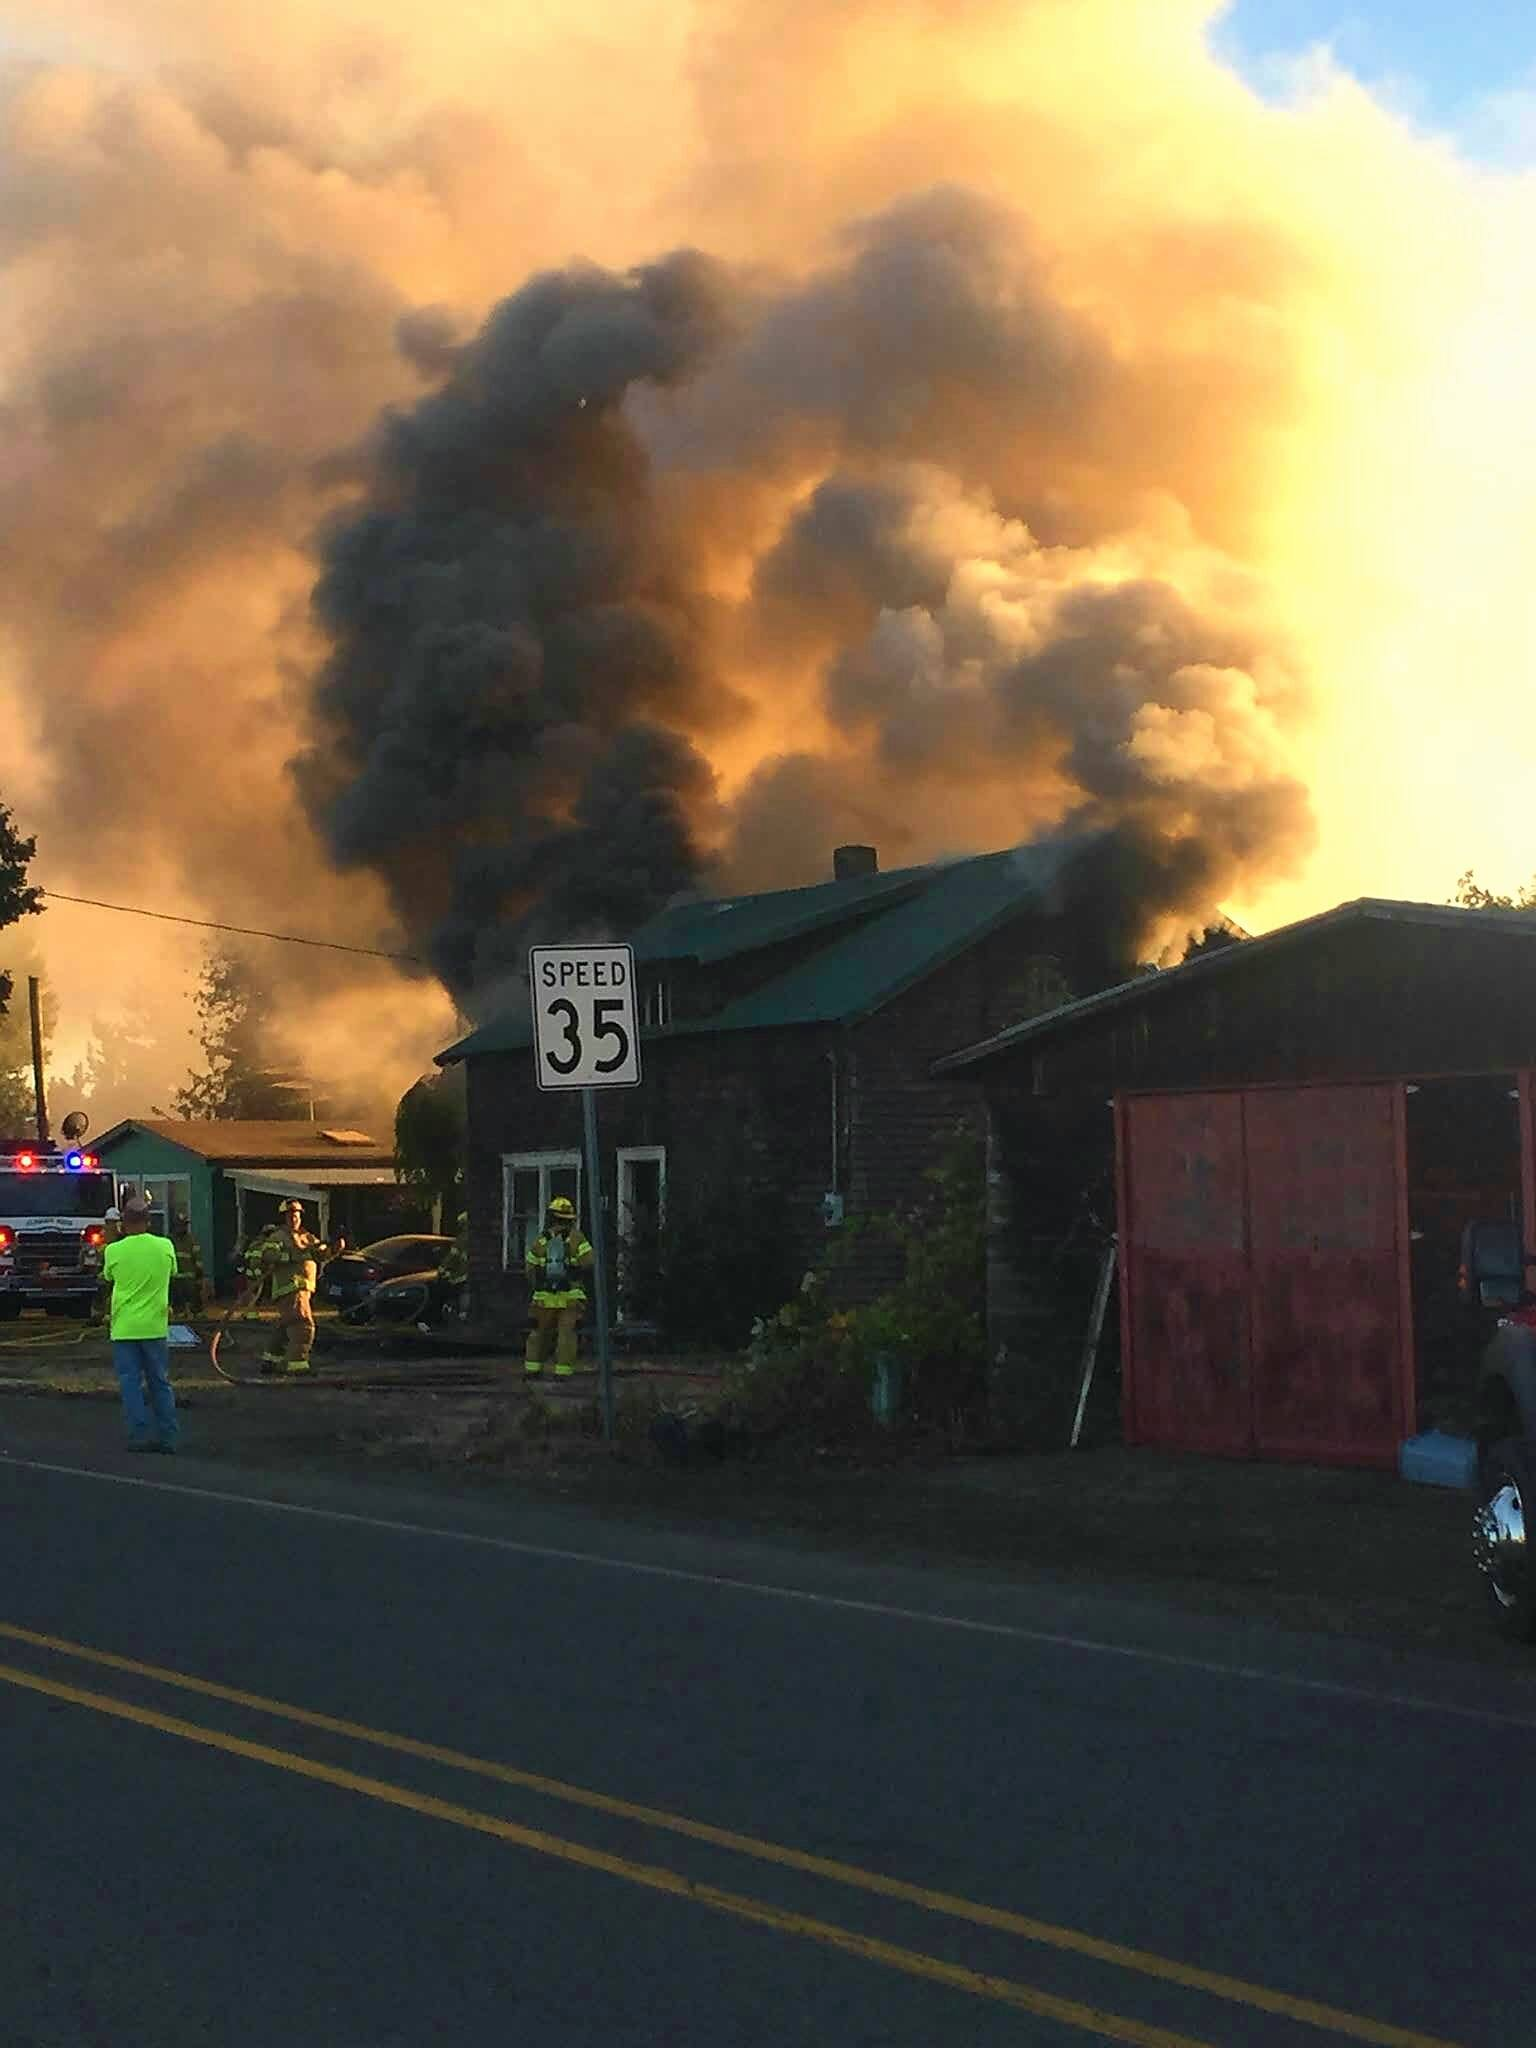 Fire in the town of Crabtree in Linn County on Sept. 12. (Photo: Linn County Sheriff's Office)